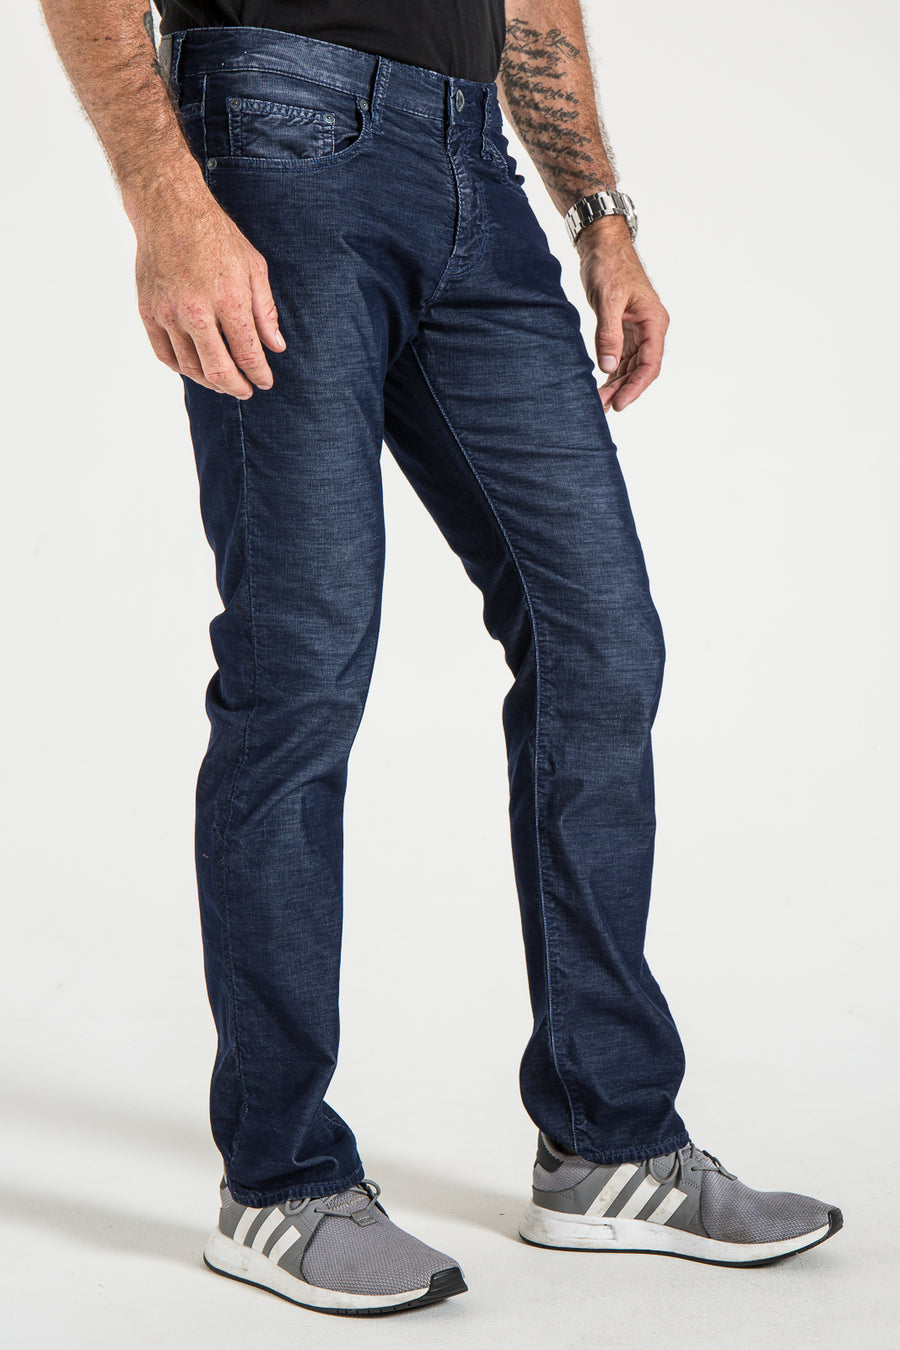 BARFLY SLIM IN DENIM CORDUROY